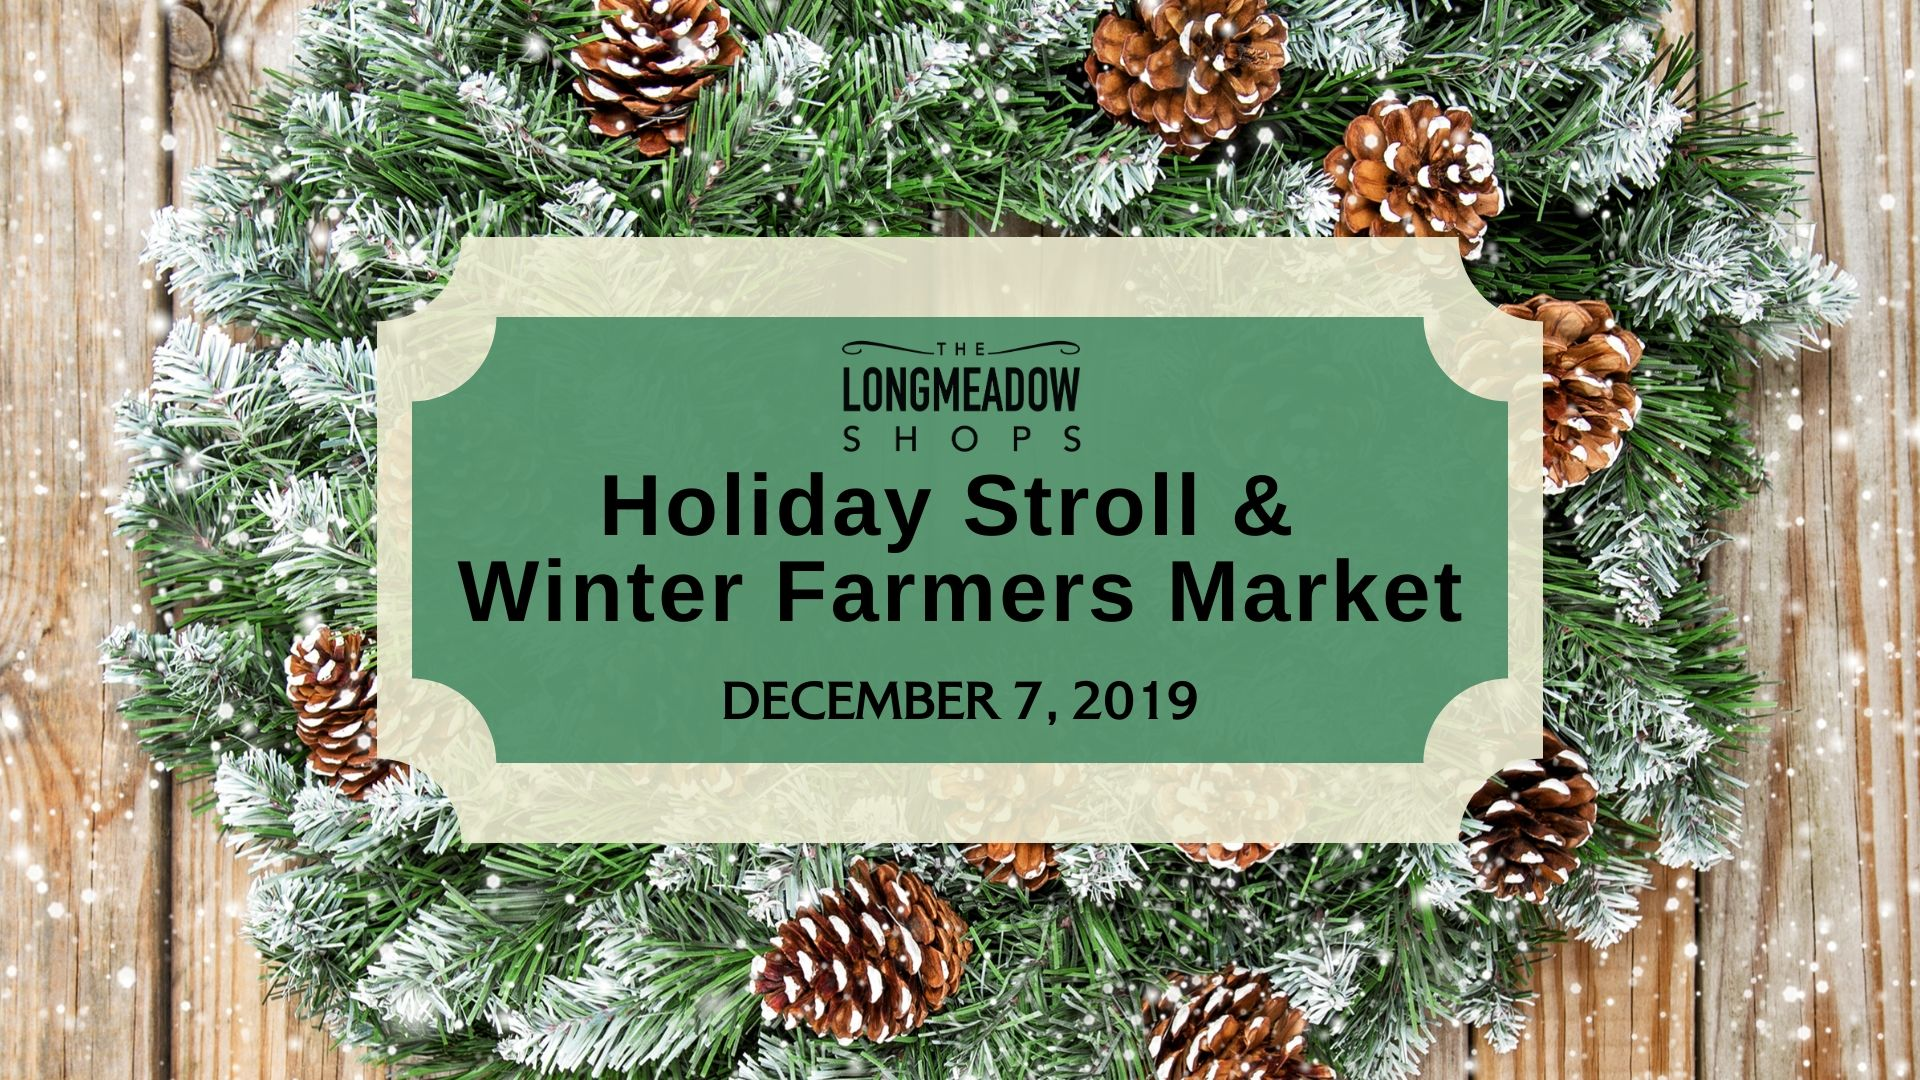 Holiday Stroll & Winter Farmers Market Graphic